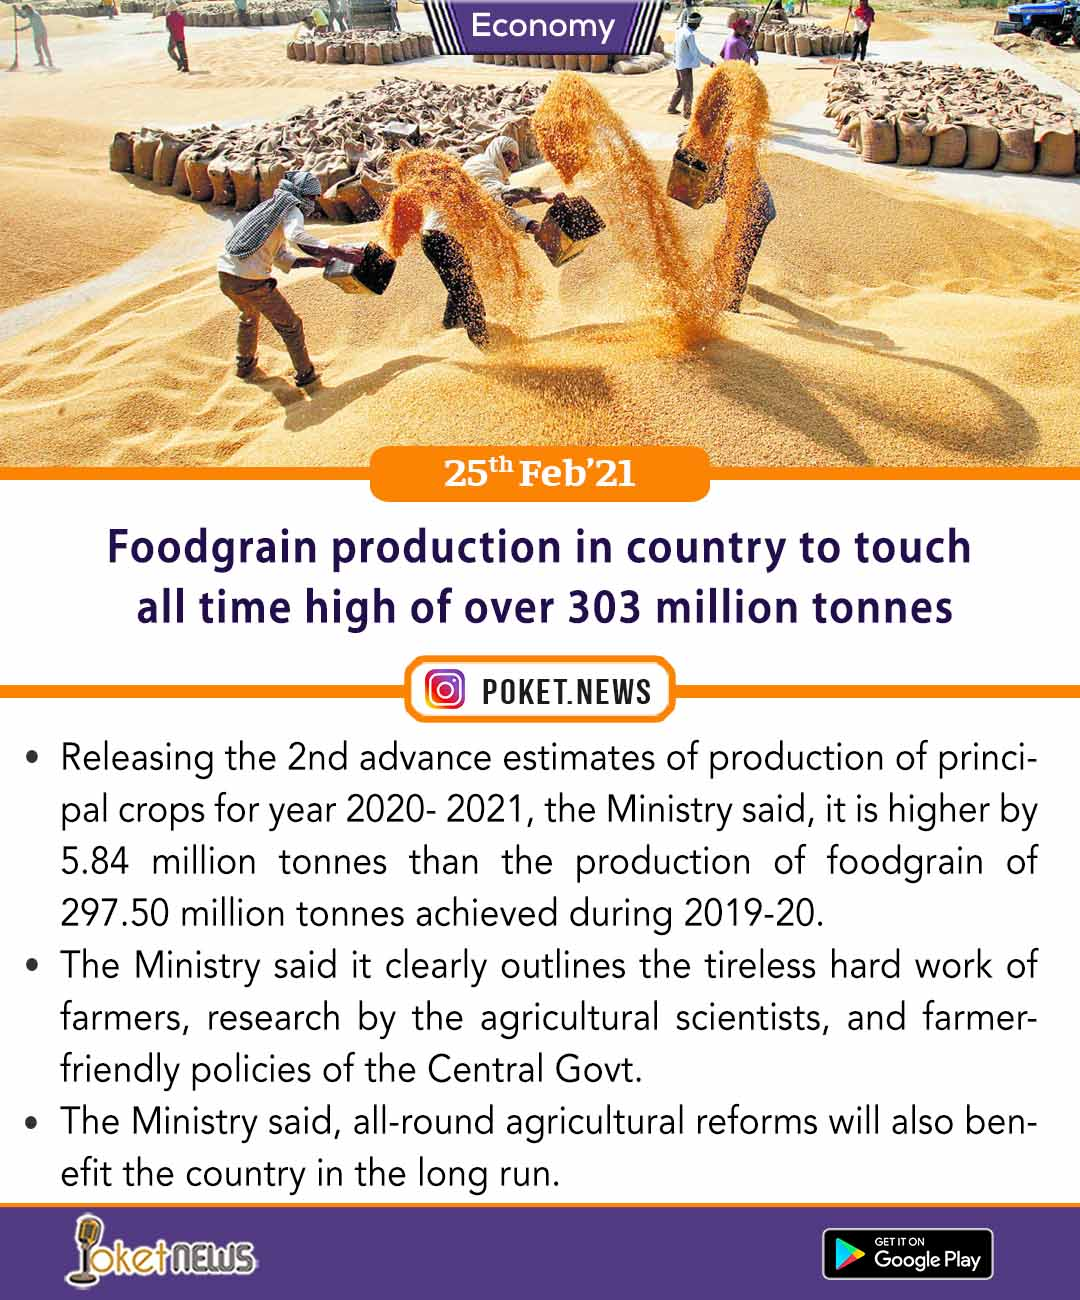 Foodgrain production in country to touch all time high of over 303 million tonnes